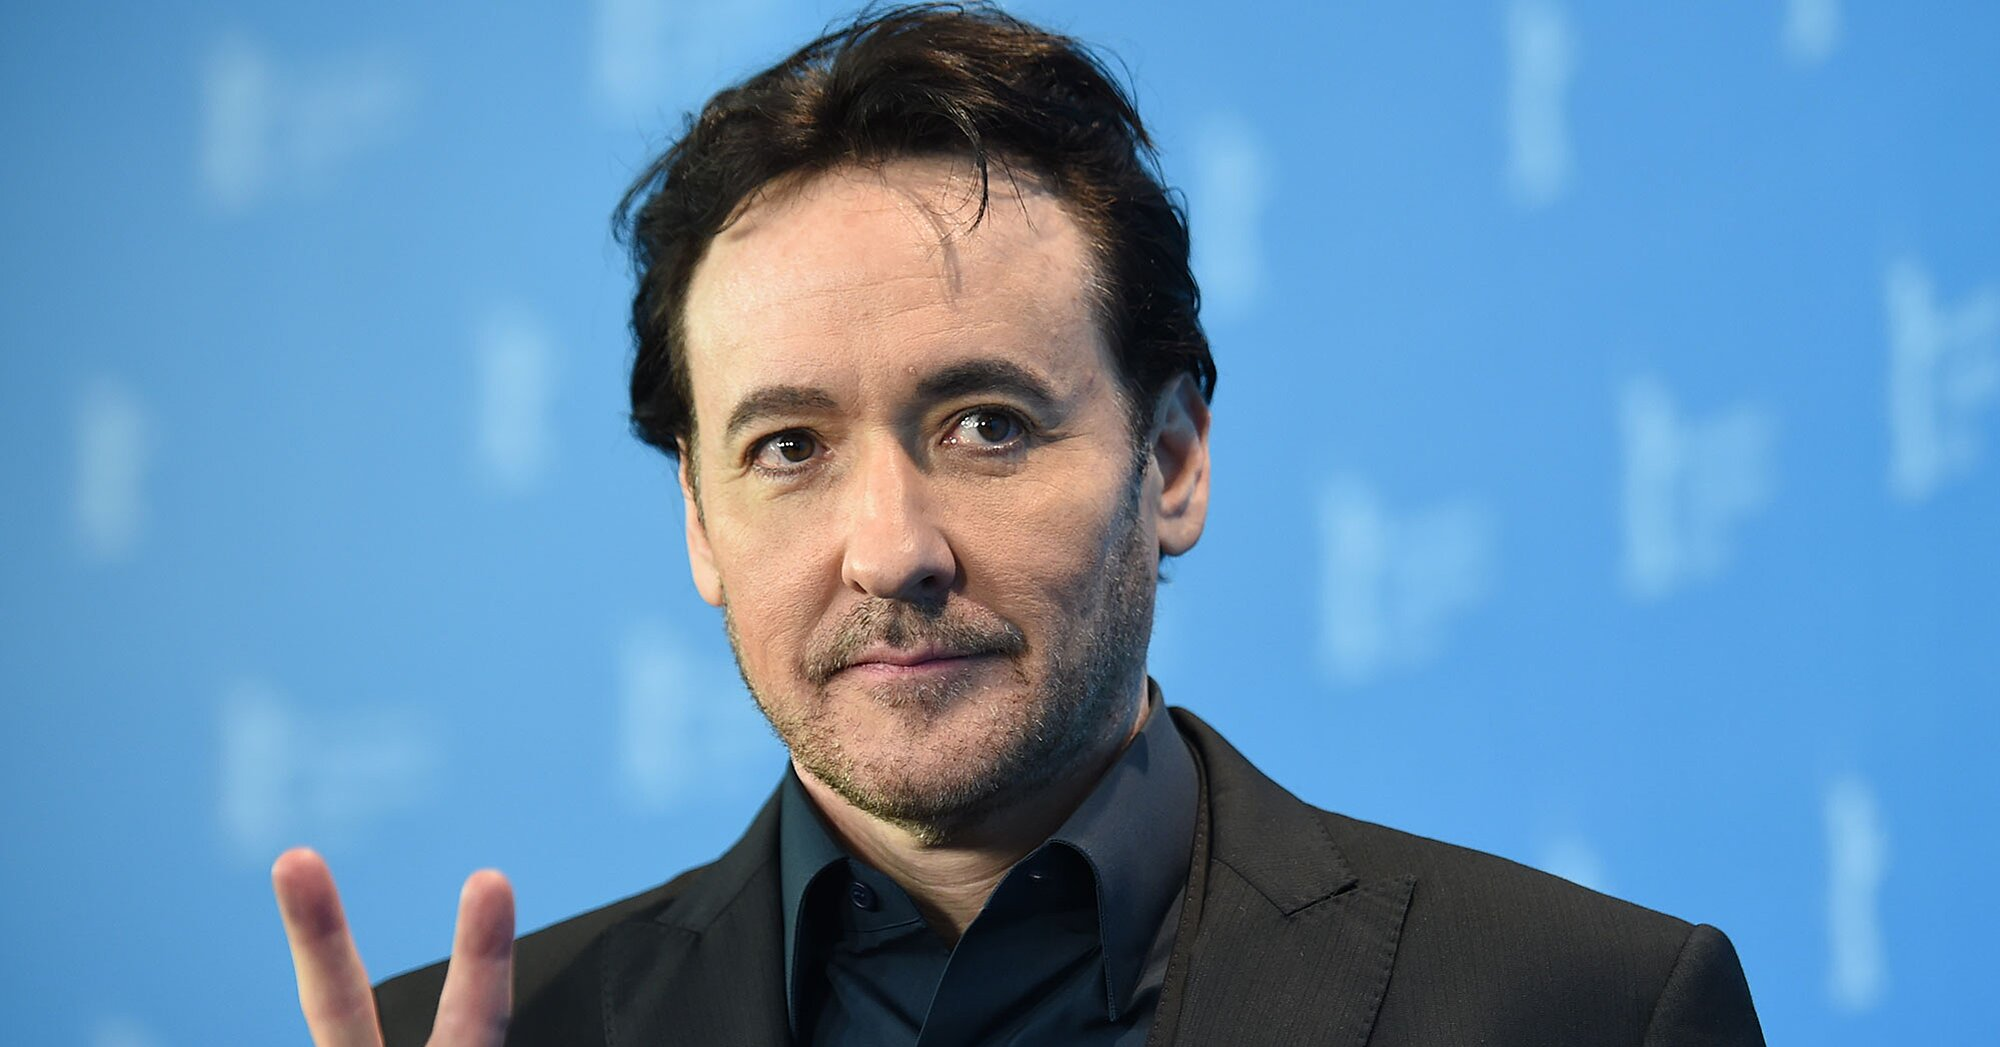 John Cusack says police 'came at me with batons' during George Floyd protest